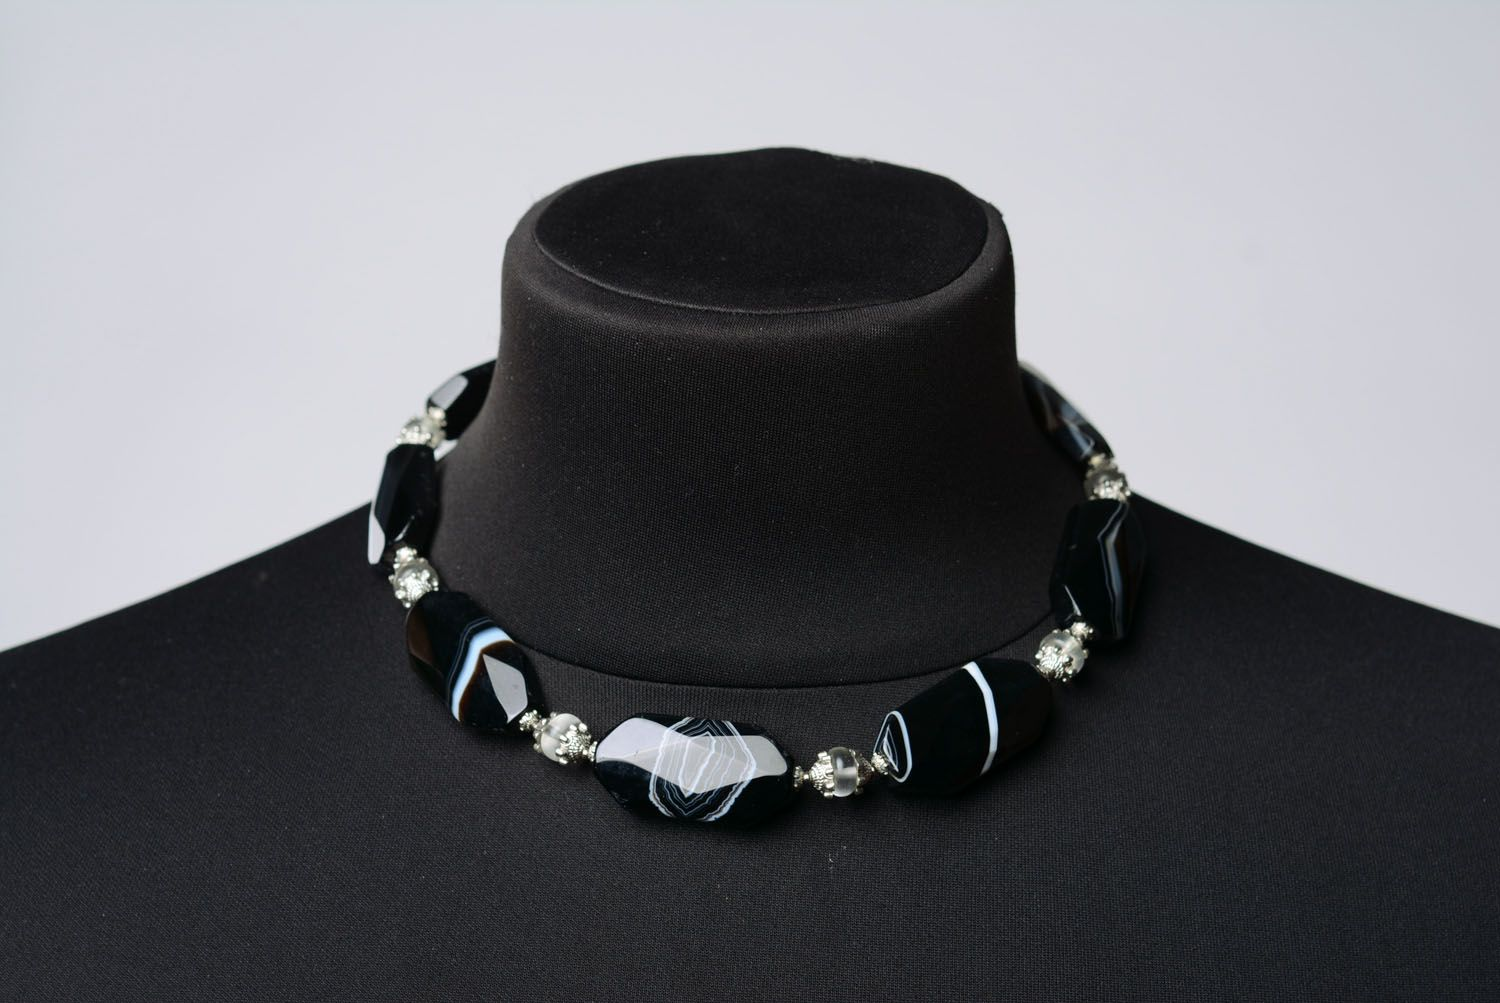 Necklace with agate and mountain crystal photo 2